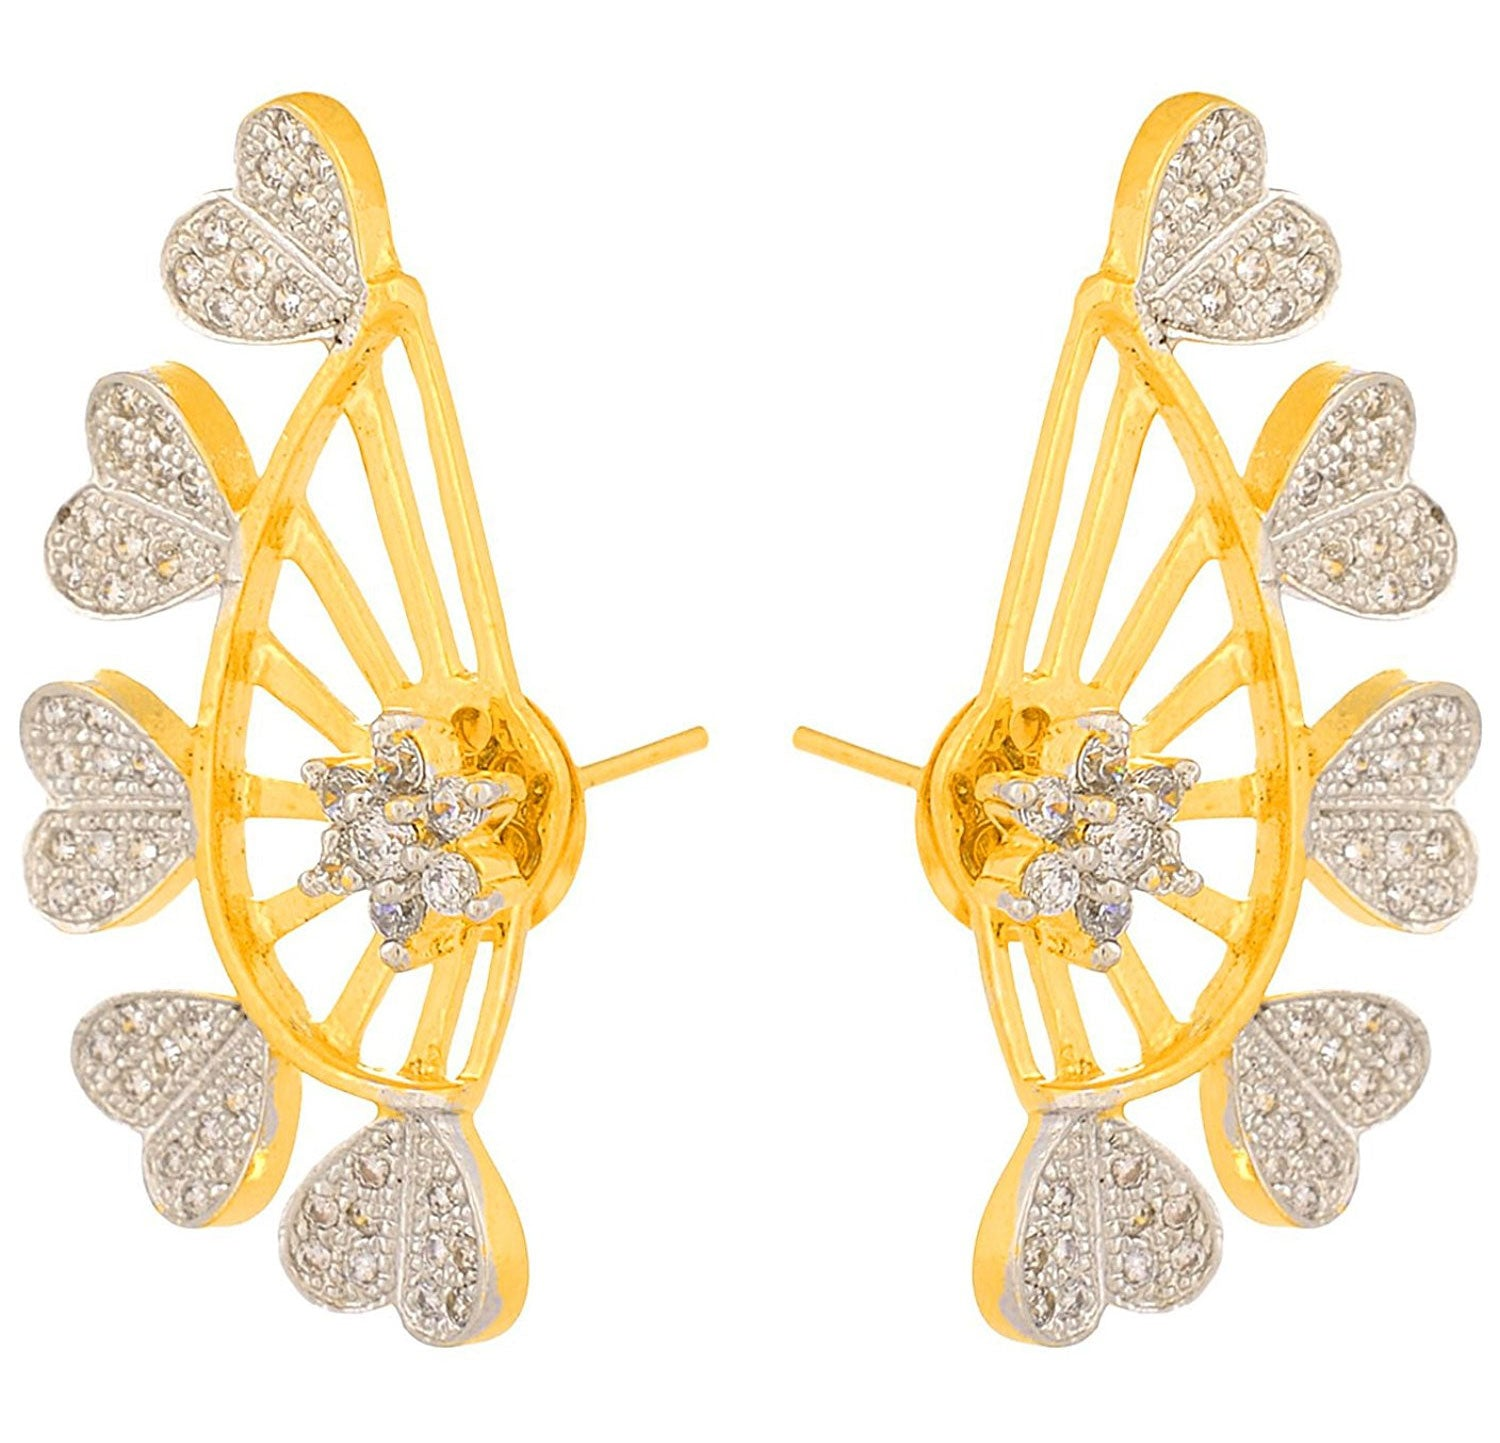 JFL- Traditional Ethnic Cz American Diamond One Gram Gold Plated Designer Earcuff Heart shaped for Girls and Women